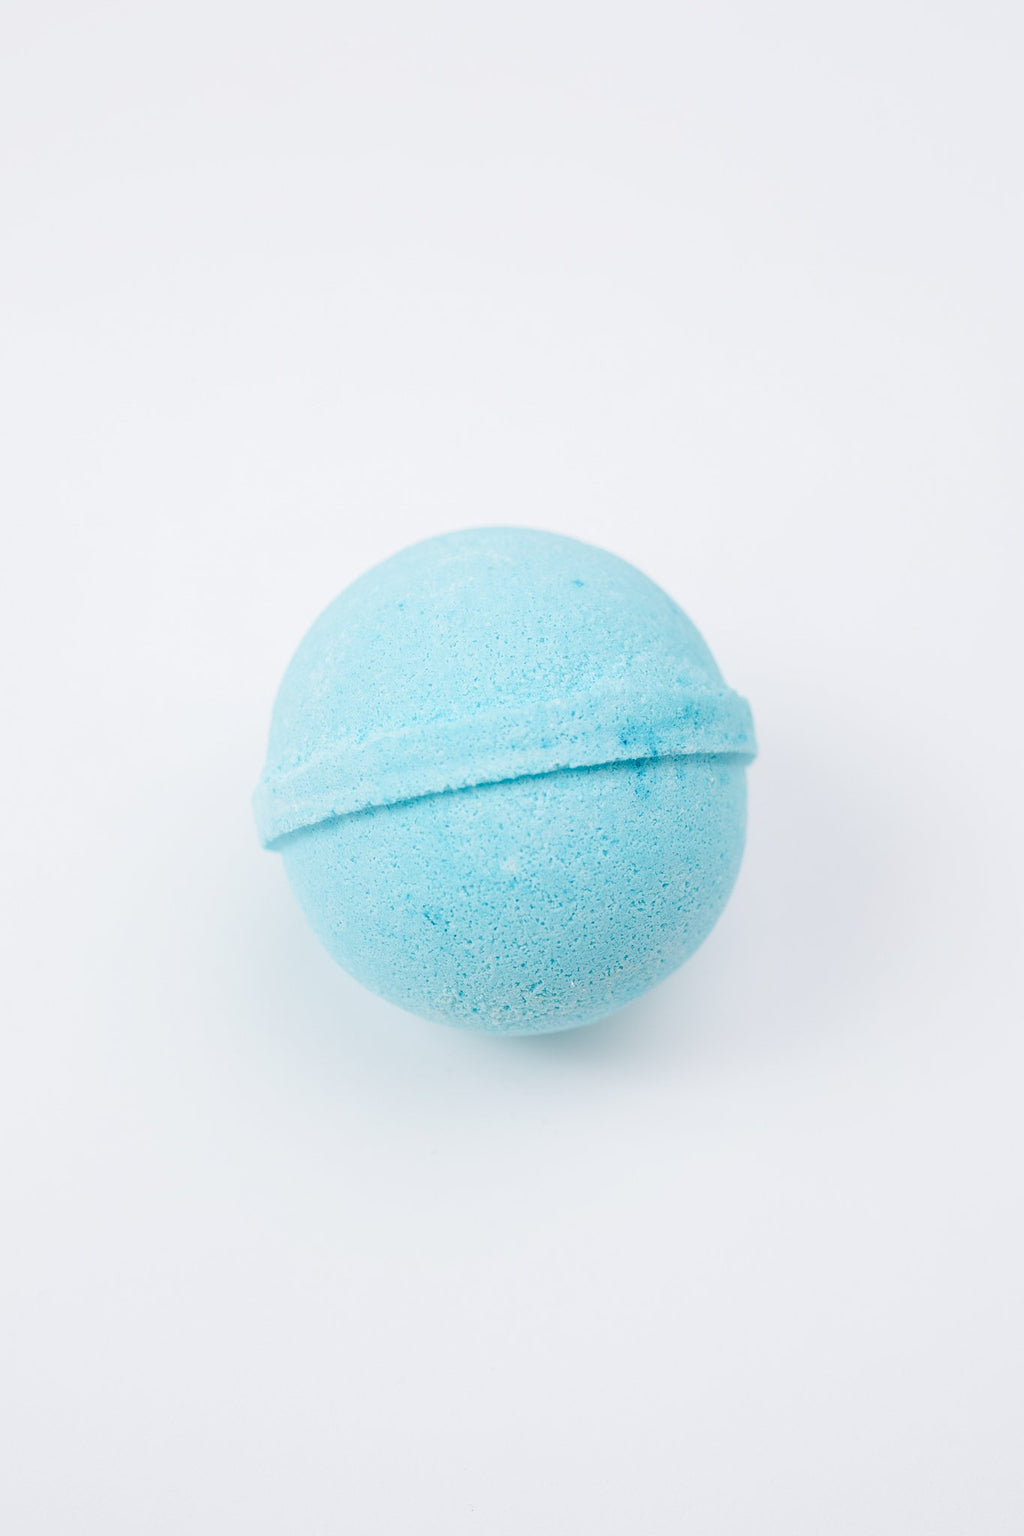 Cottage Garden Bath Bomb in Blue Christmas-11-19-2020, Accessories, Bath & Body, BFCM2020, Candles, Group A, Group B, Group C, Group V, Group X, Group Z, Holiday Gifts-Womens Artisan USA American Made Clothing Accessories